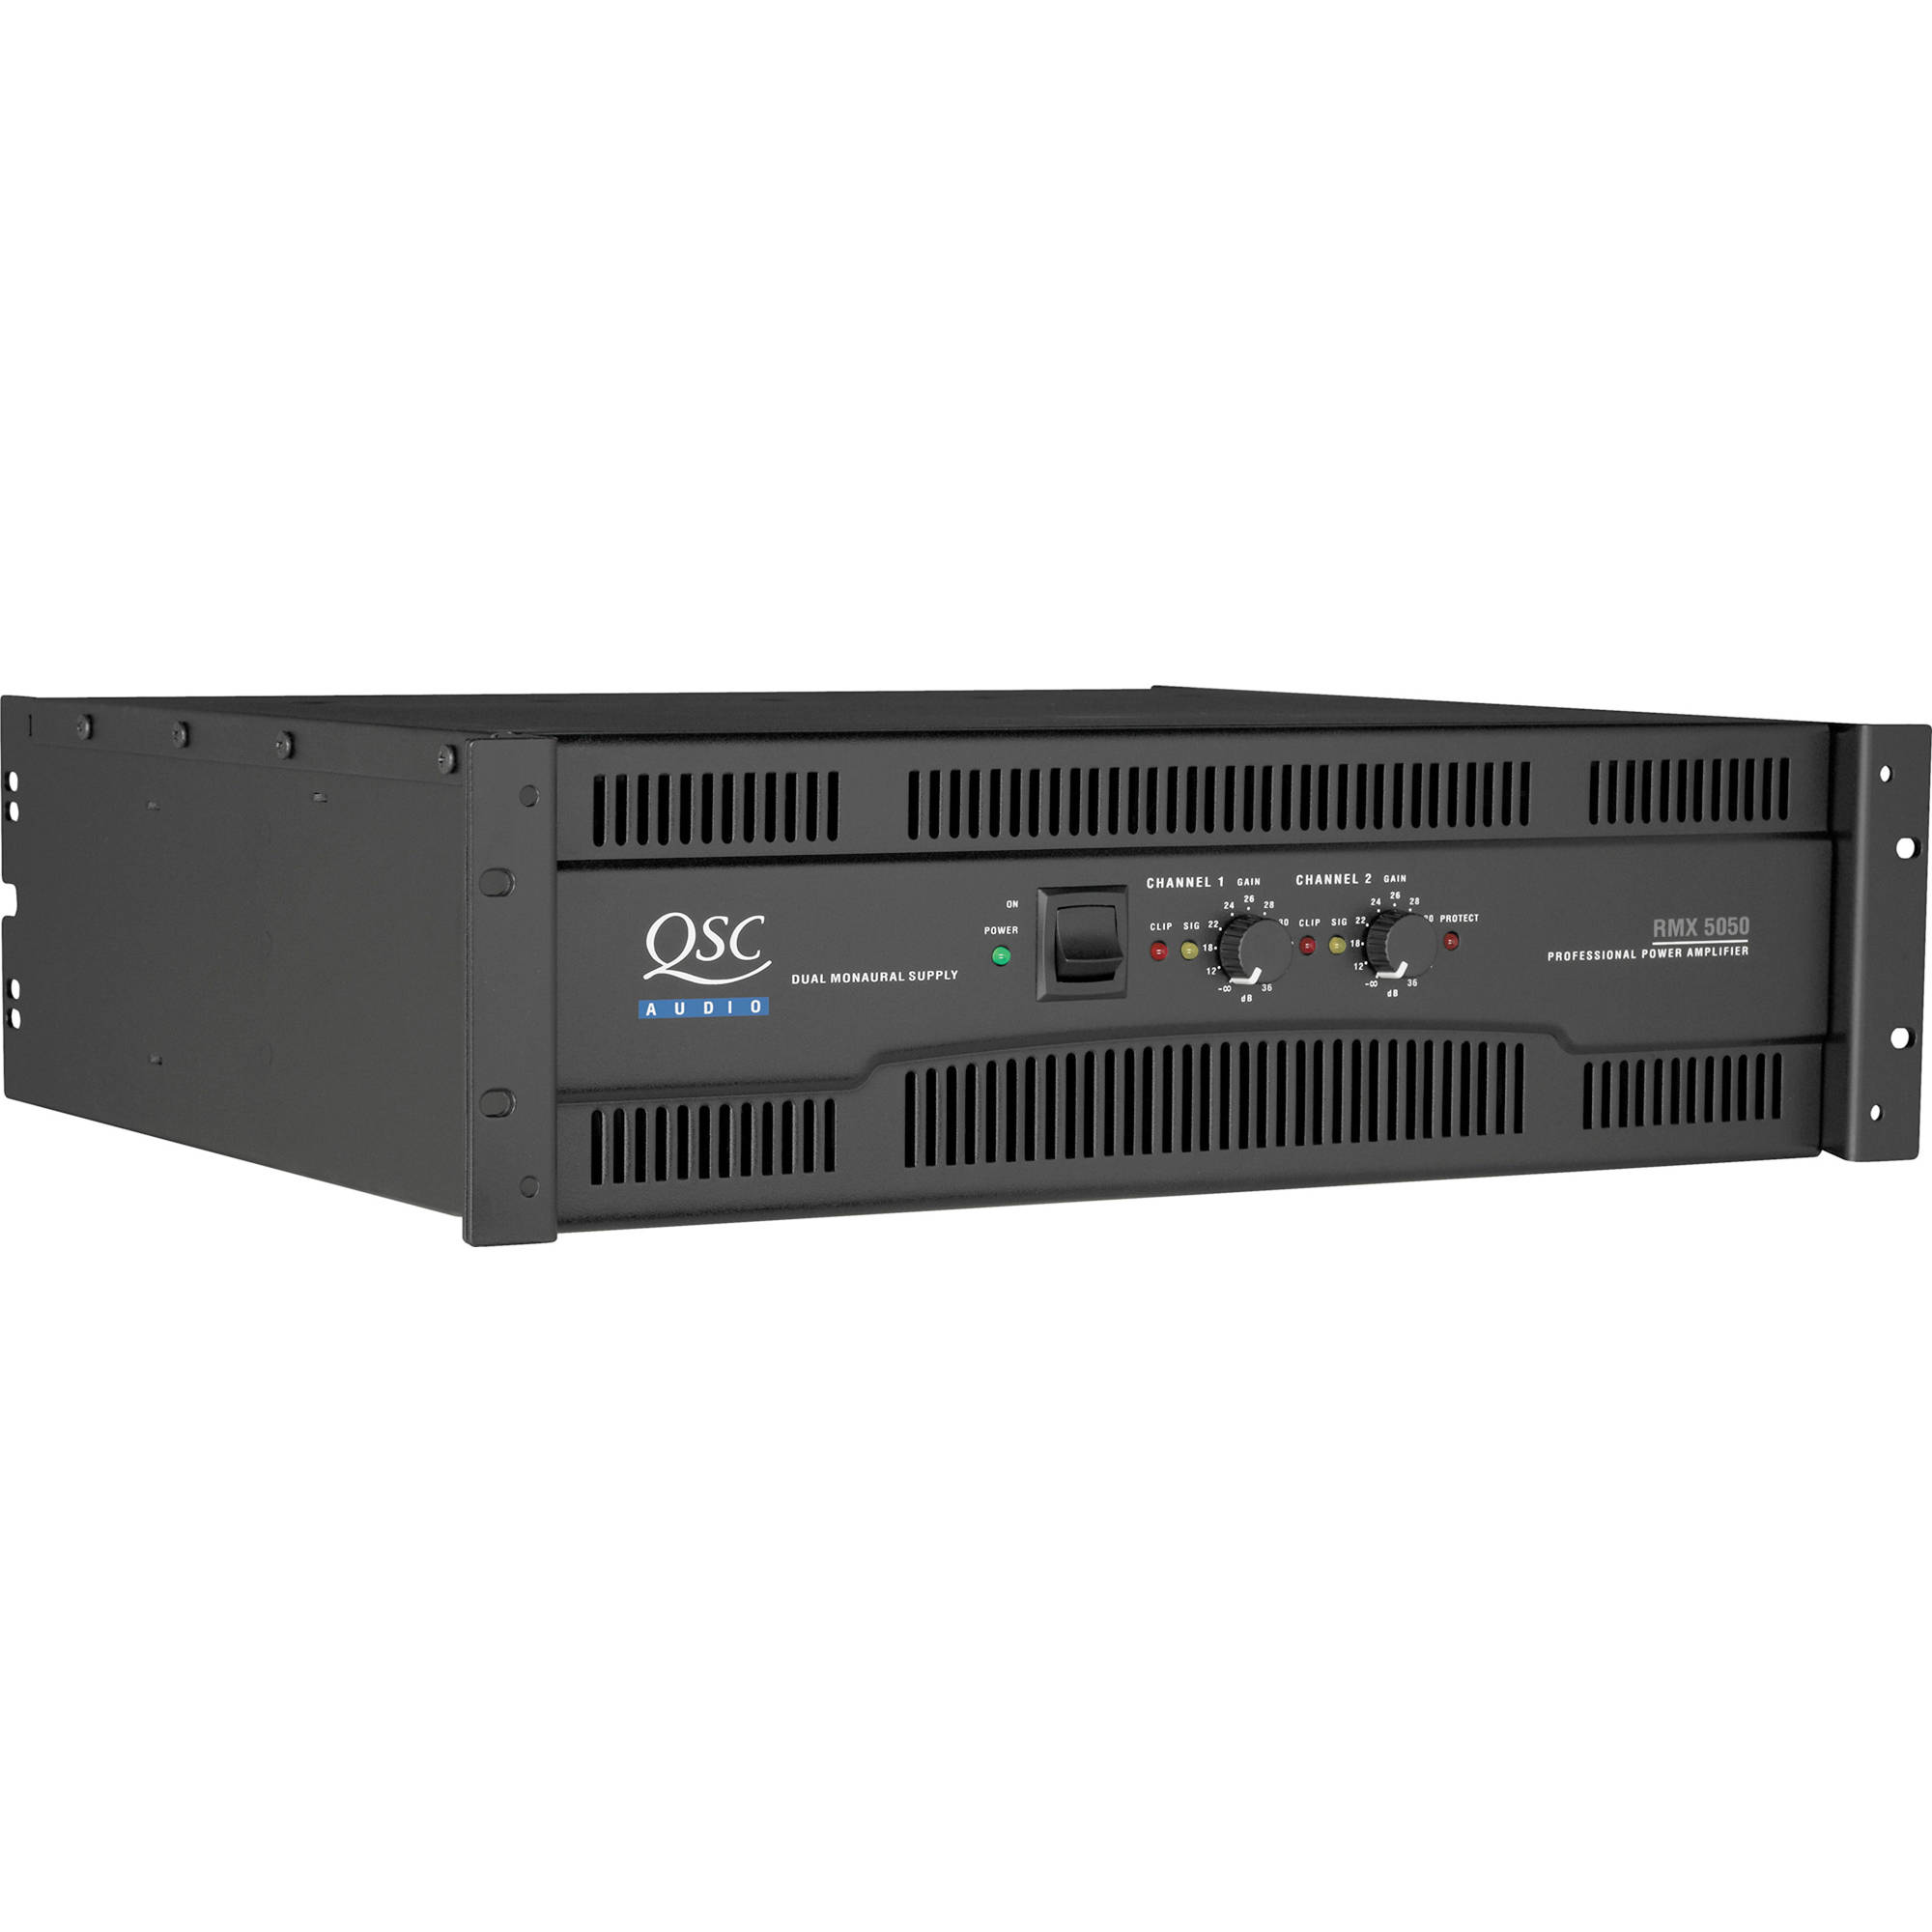 Qsc Rmx 5050 2 Channel Power Amplifier Rmx5050 Bh Photo Video Two Way 20 Watts Audio 1050w Per Into 8 Ohms